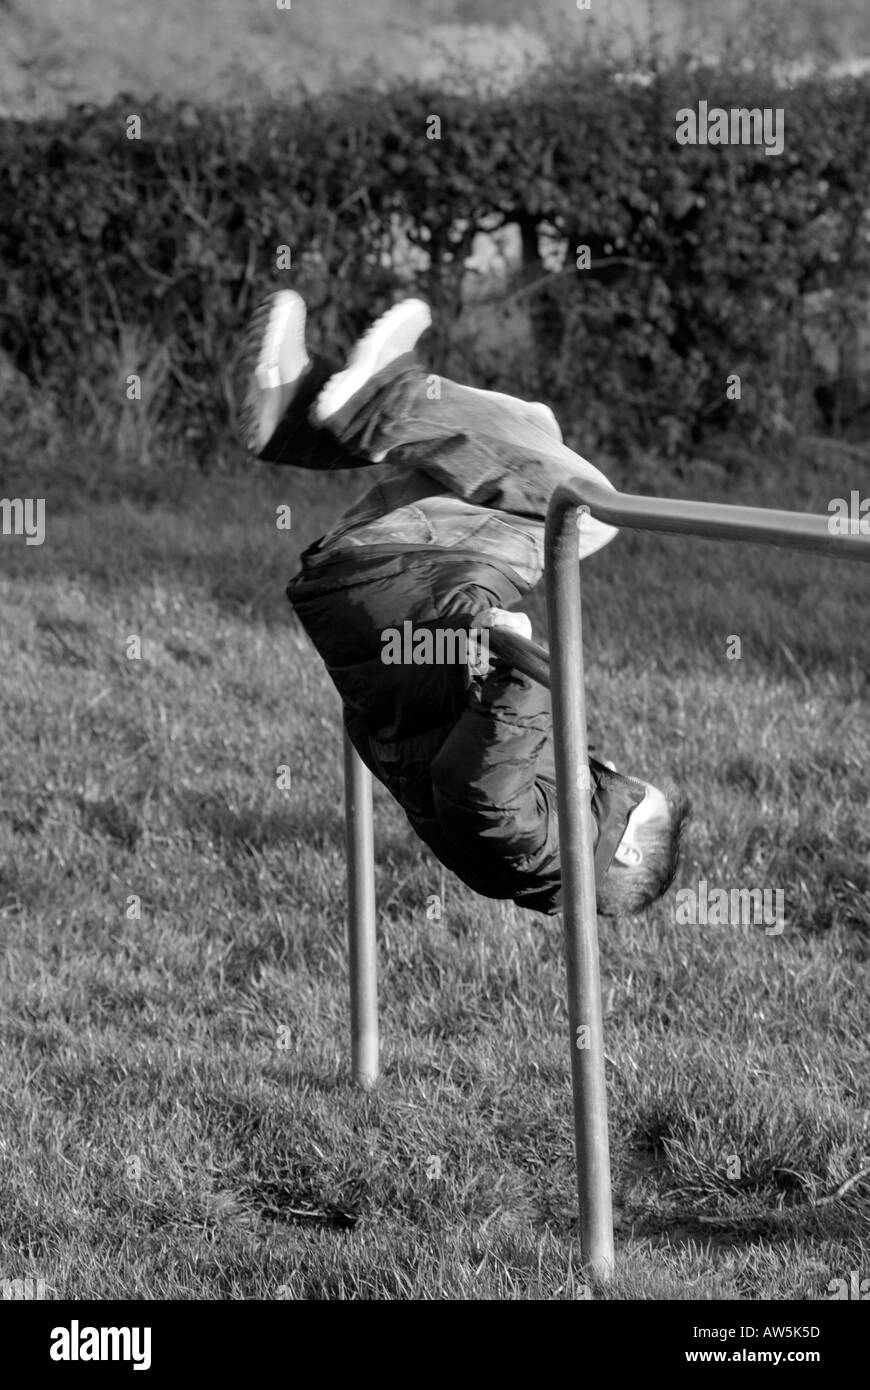 young kid child boy playing on playground equipment climb climbing frame net exercise balance energy hyperactive testosterone ag - Stock Image